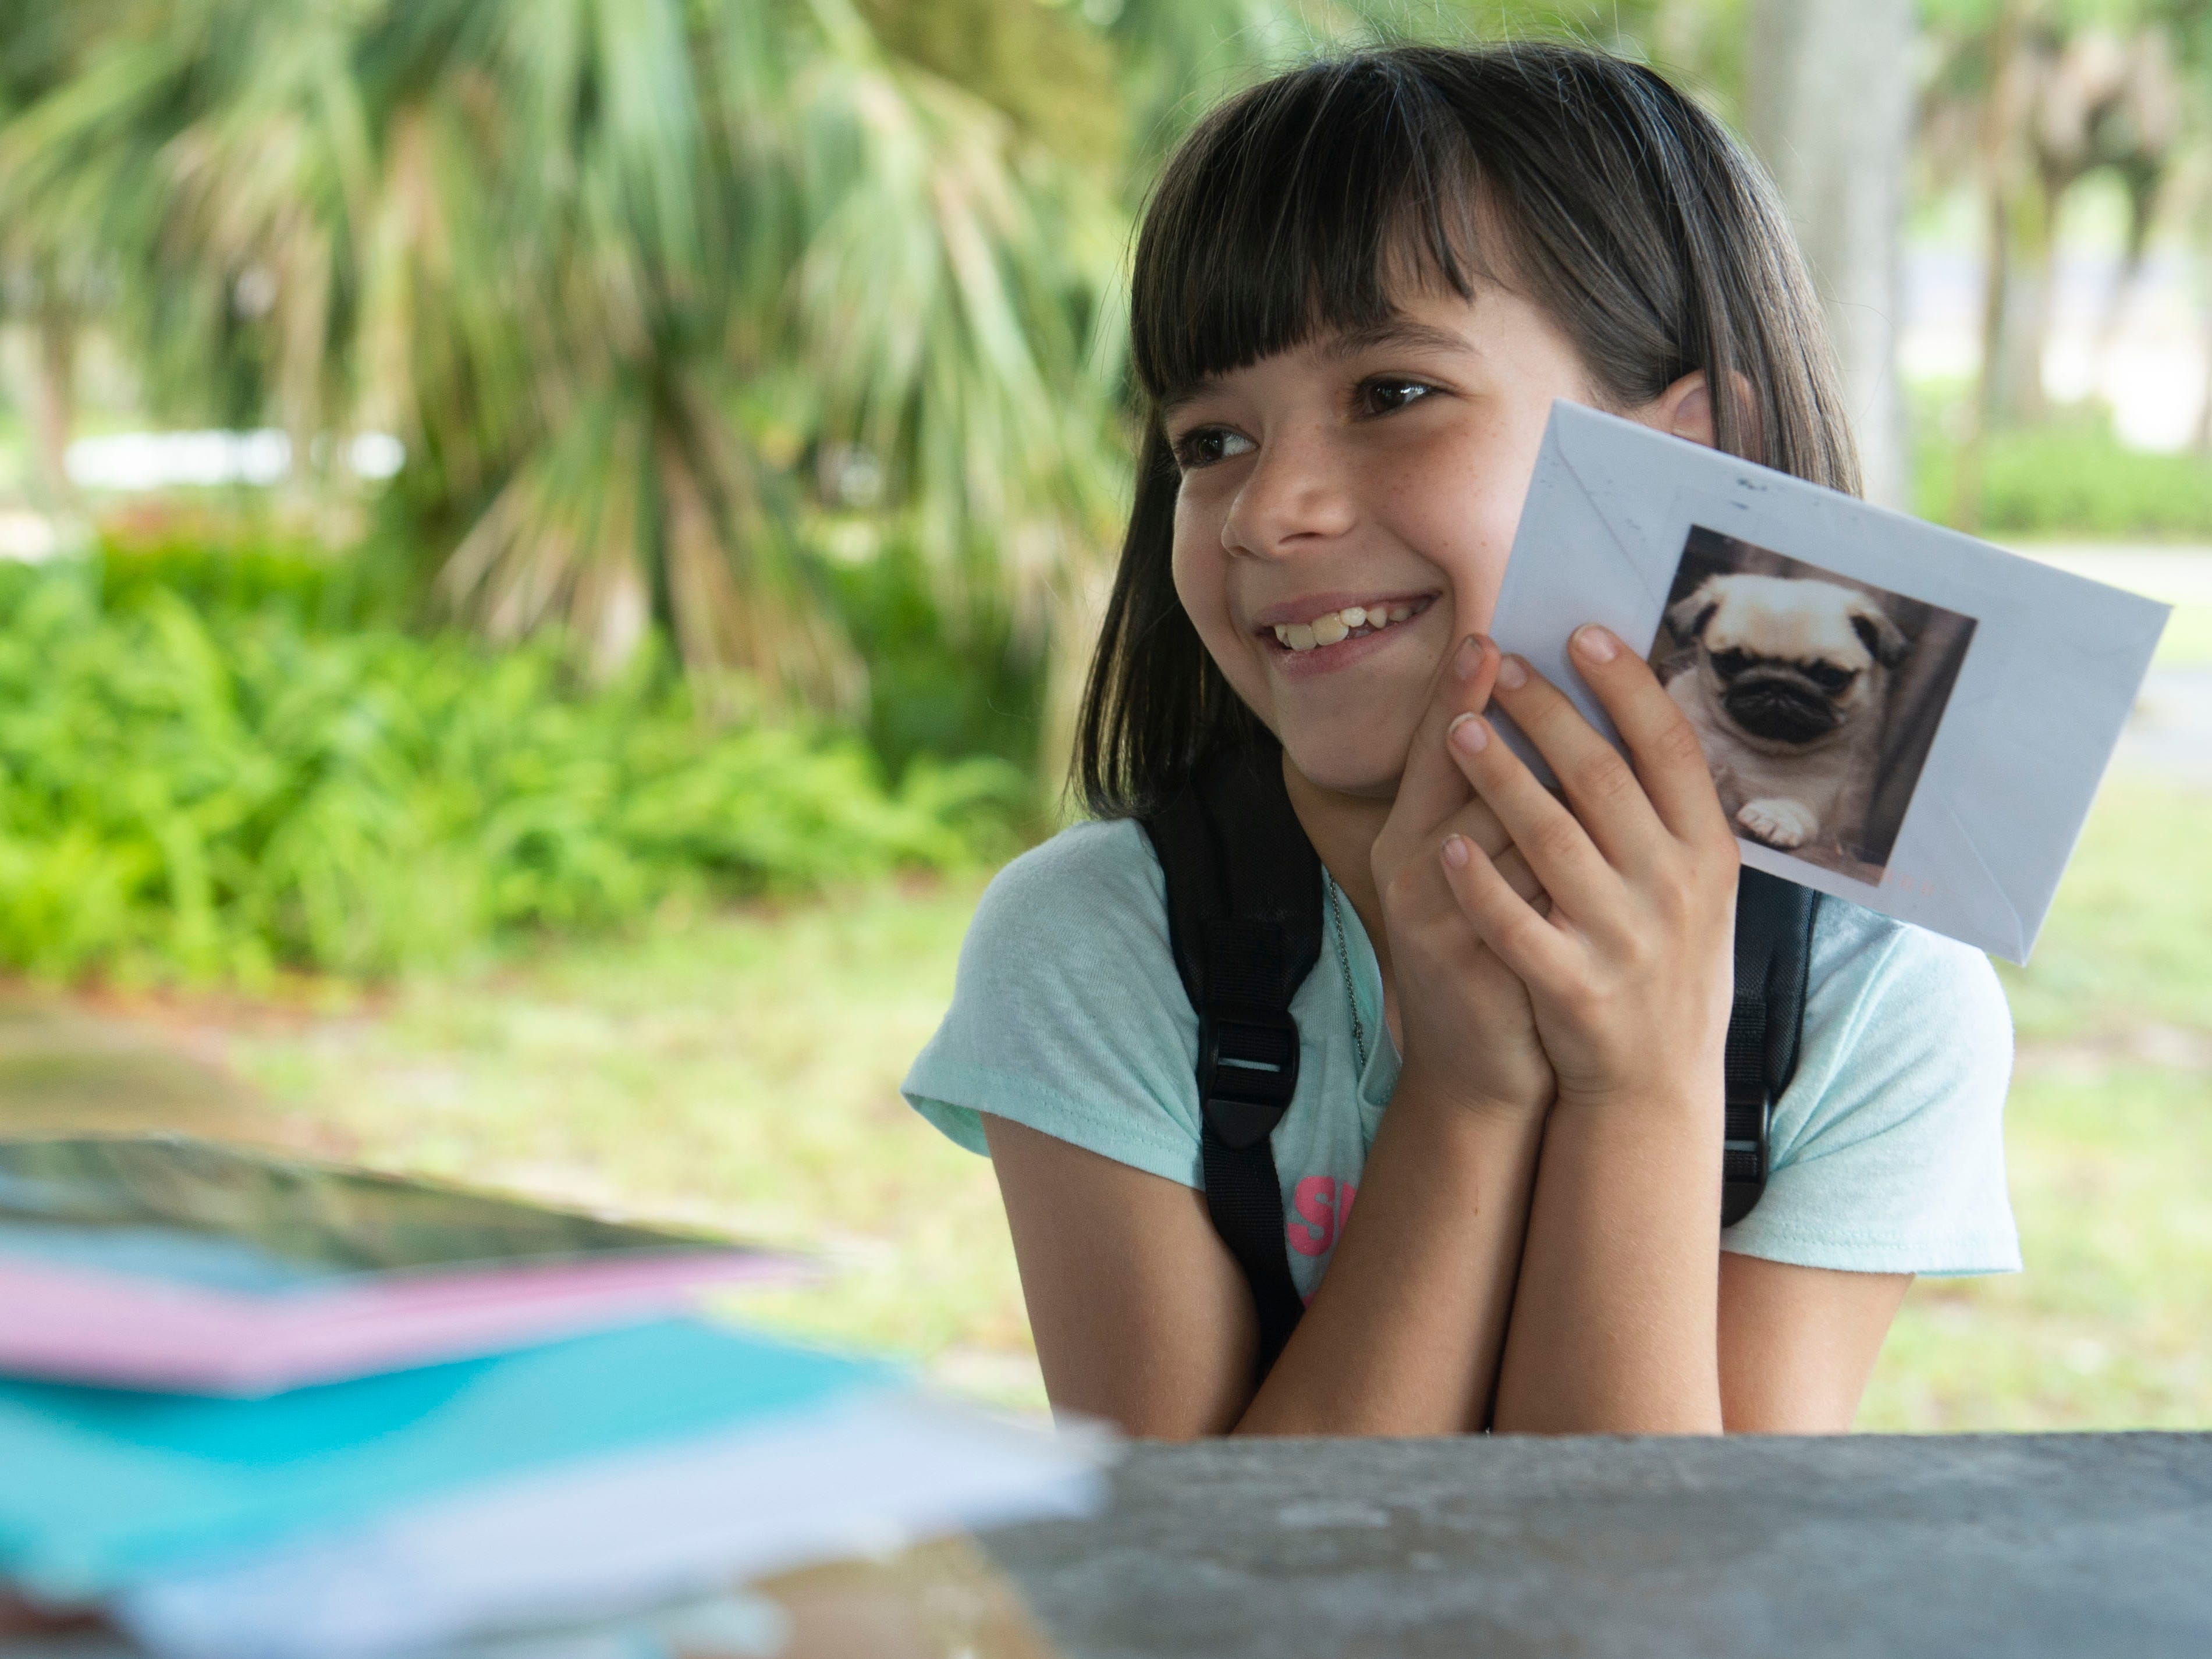 """""""I screamed when I saw it was a pug,"""" said Halee Doud, 8, of Vero Beach, on Sept. 21, 2018 when she saw a card from a well-wisher with a pug sticker on the back. Doud spends much of her life in a hospital and has a variety of medical issues, including an irregular heartbeat, a feeding tube and multiple allergies. For her ninth birthday on Oct. 8, her mother, Tabitha Doud, has requested well-wishers send cards to Halee Doud, P.O. Box 651517, Vero Beach, FL 32965. """"It gives me a smile and makes me feel happy,"""" Halee Doud of receiving cards."""